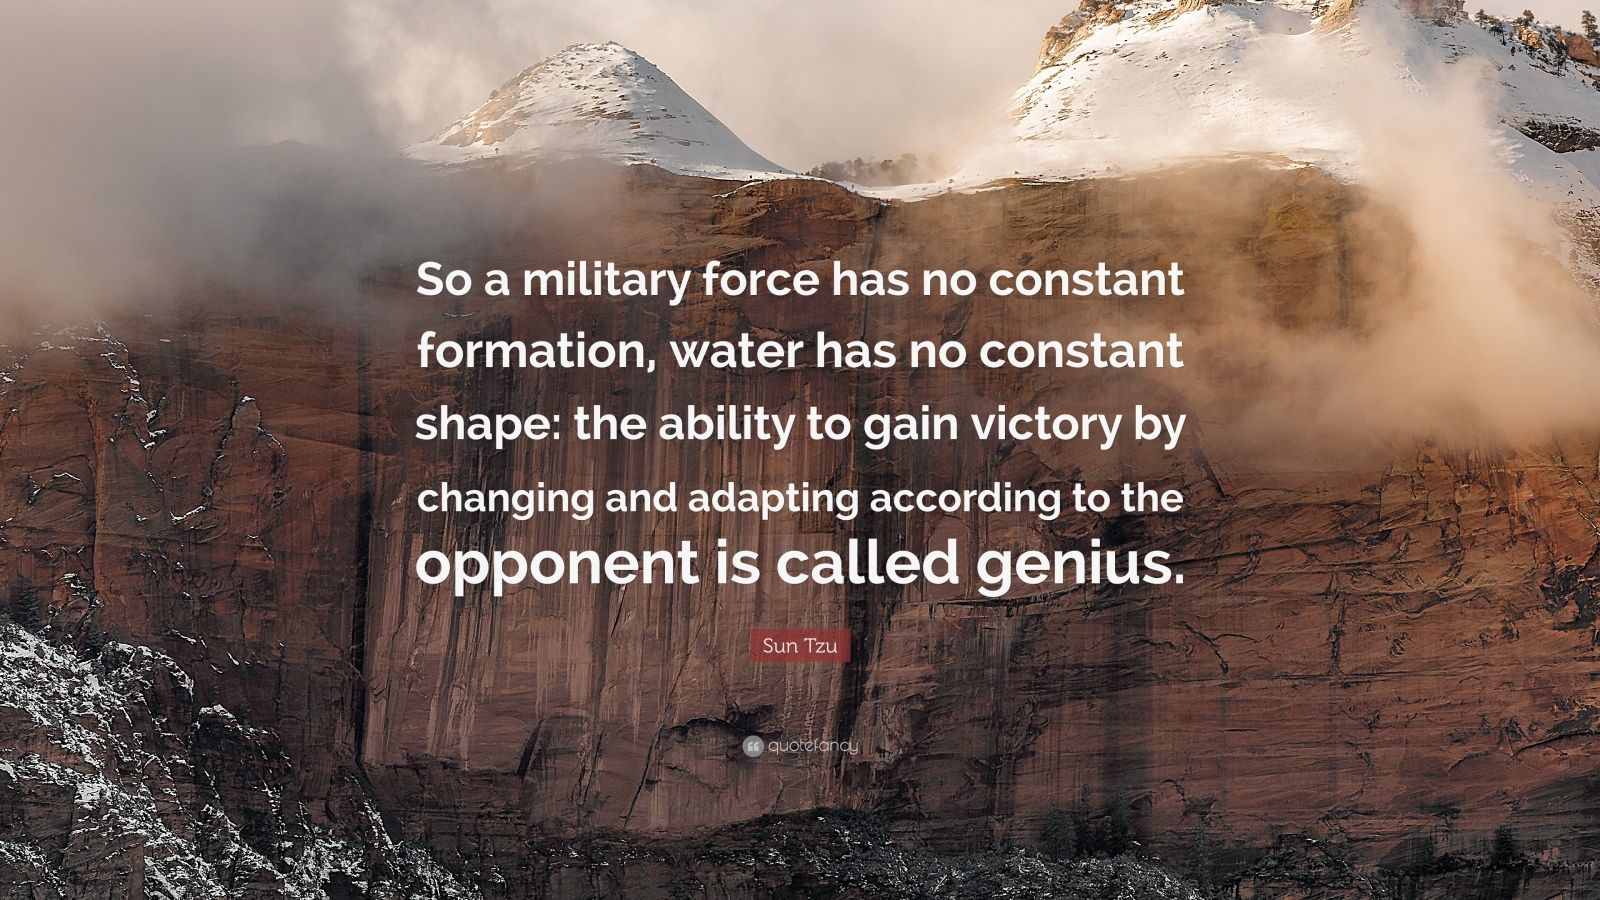 """Sun Tzu Quote: """"So a military force has no constant formation, water has no constant shape: the ability to gain victory by changing and adapting according to the opponent is called genius."""""""